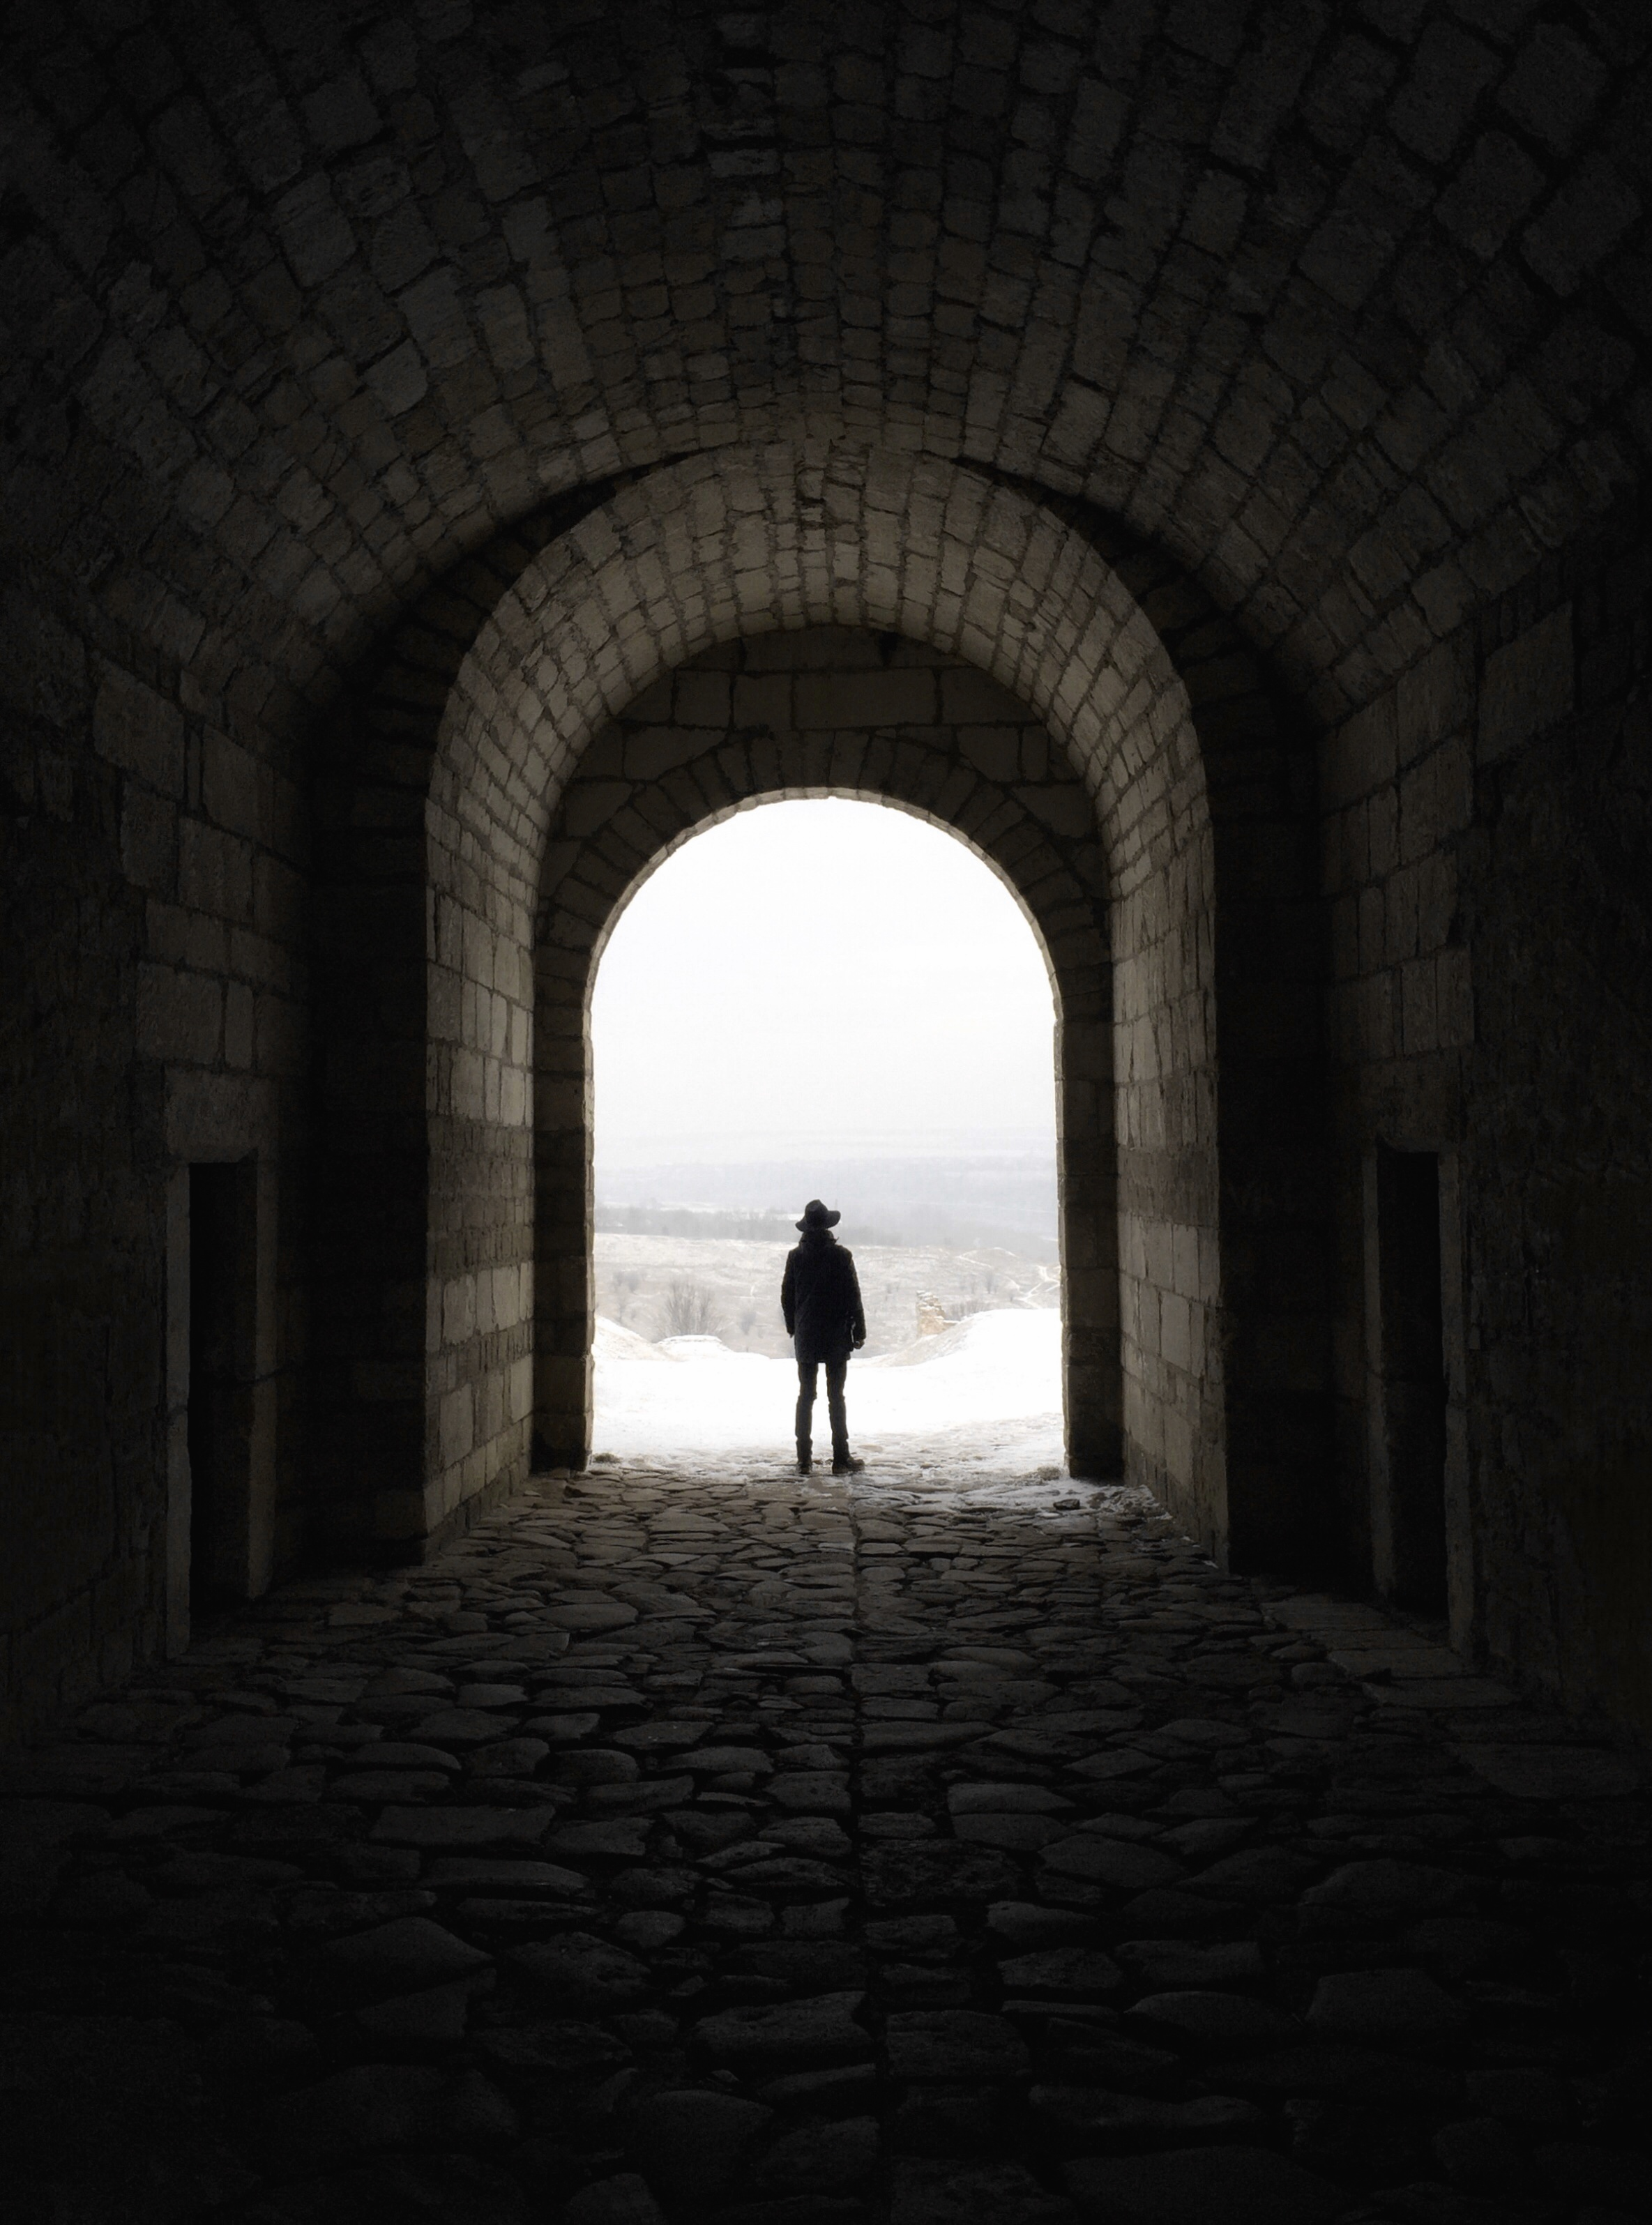 Iphone X Perspective Wallpaper Size Greyscale Photography Of Man Walking On Tunnel 183 Free